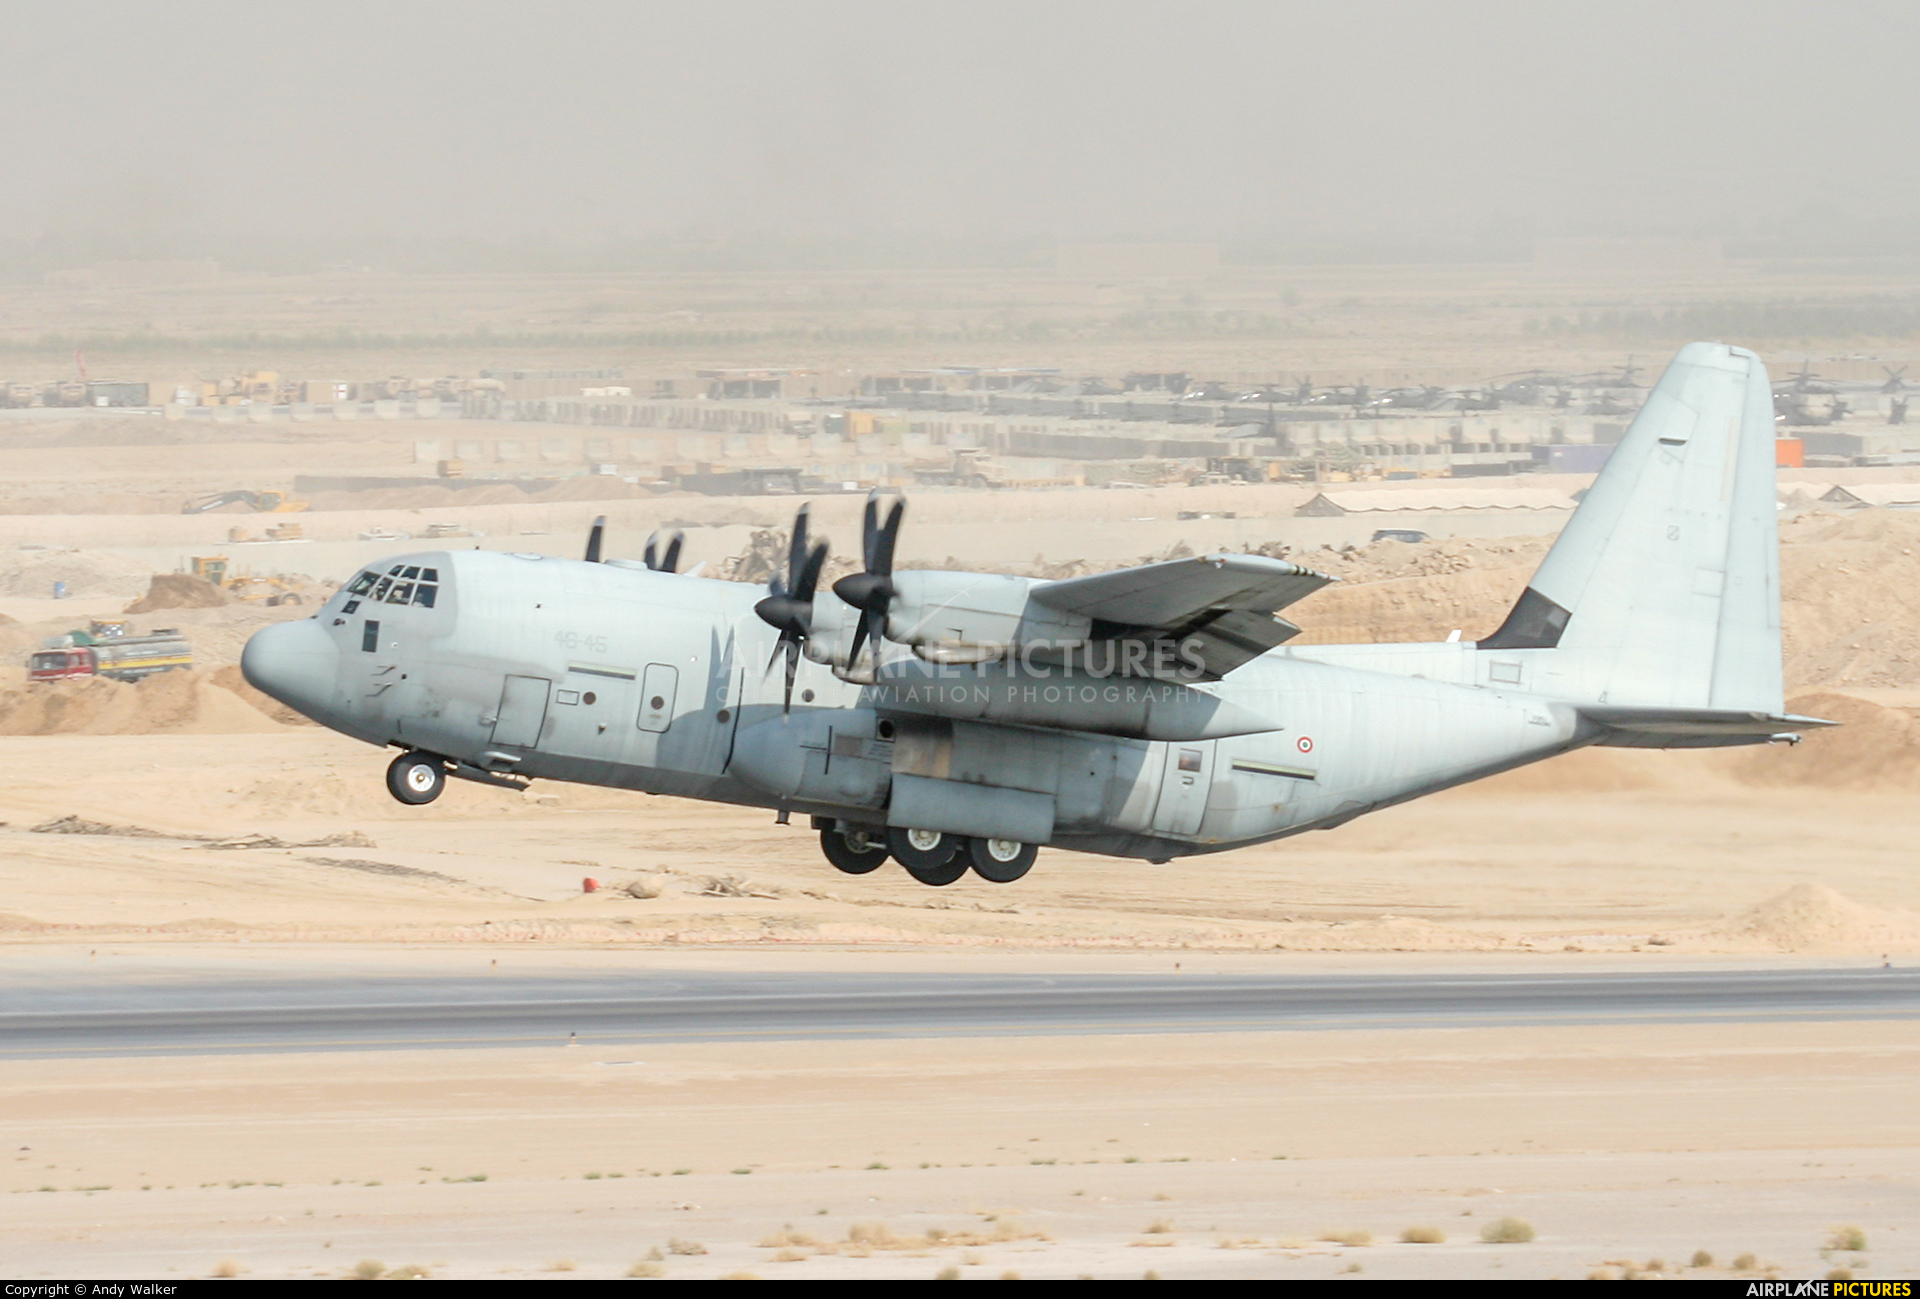 Italy - Air Force MM62180 aircraft at Kandahar